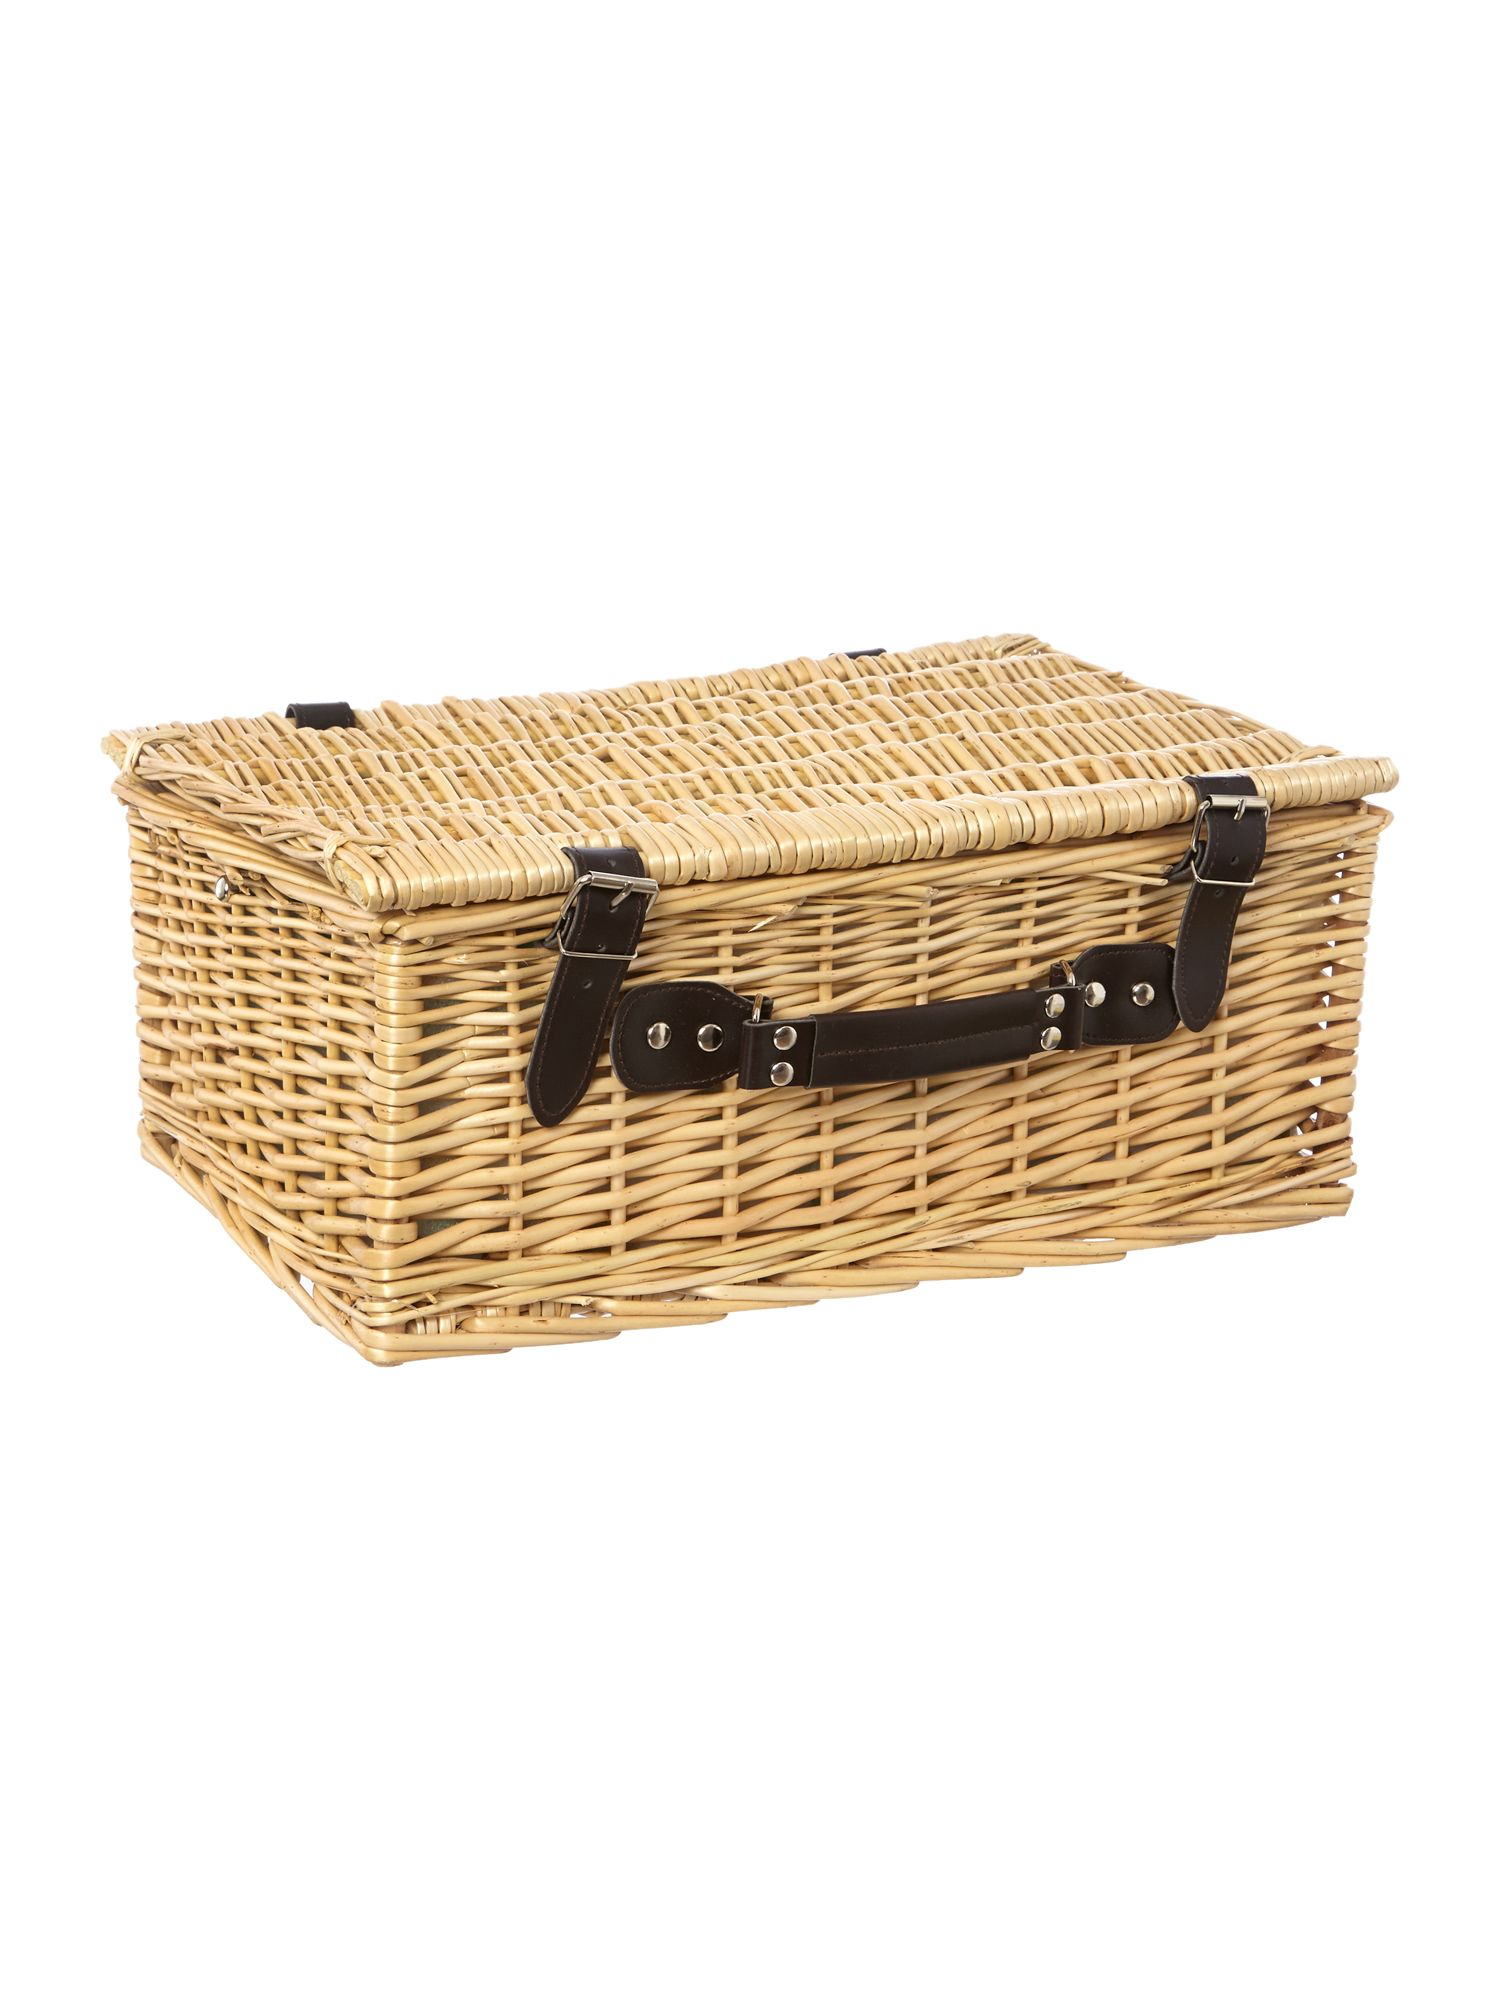 Urban explorer 2 person hamper